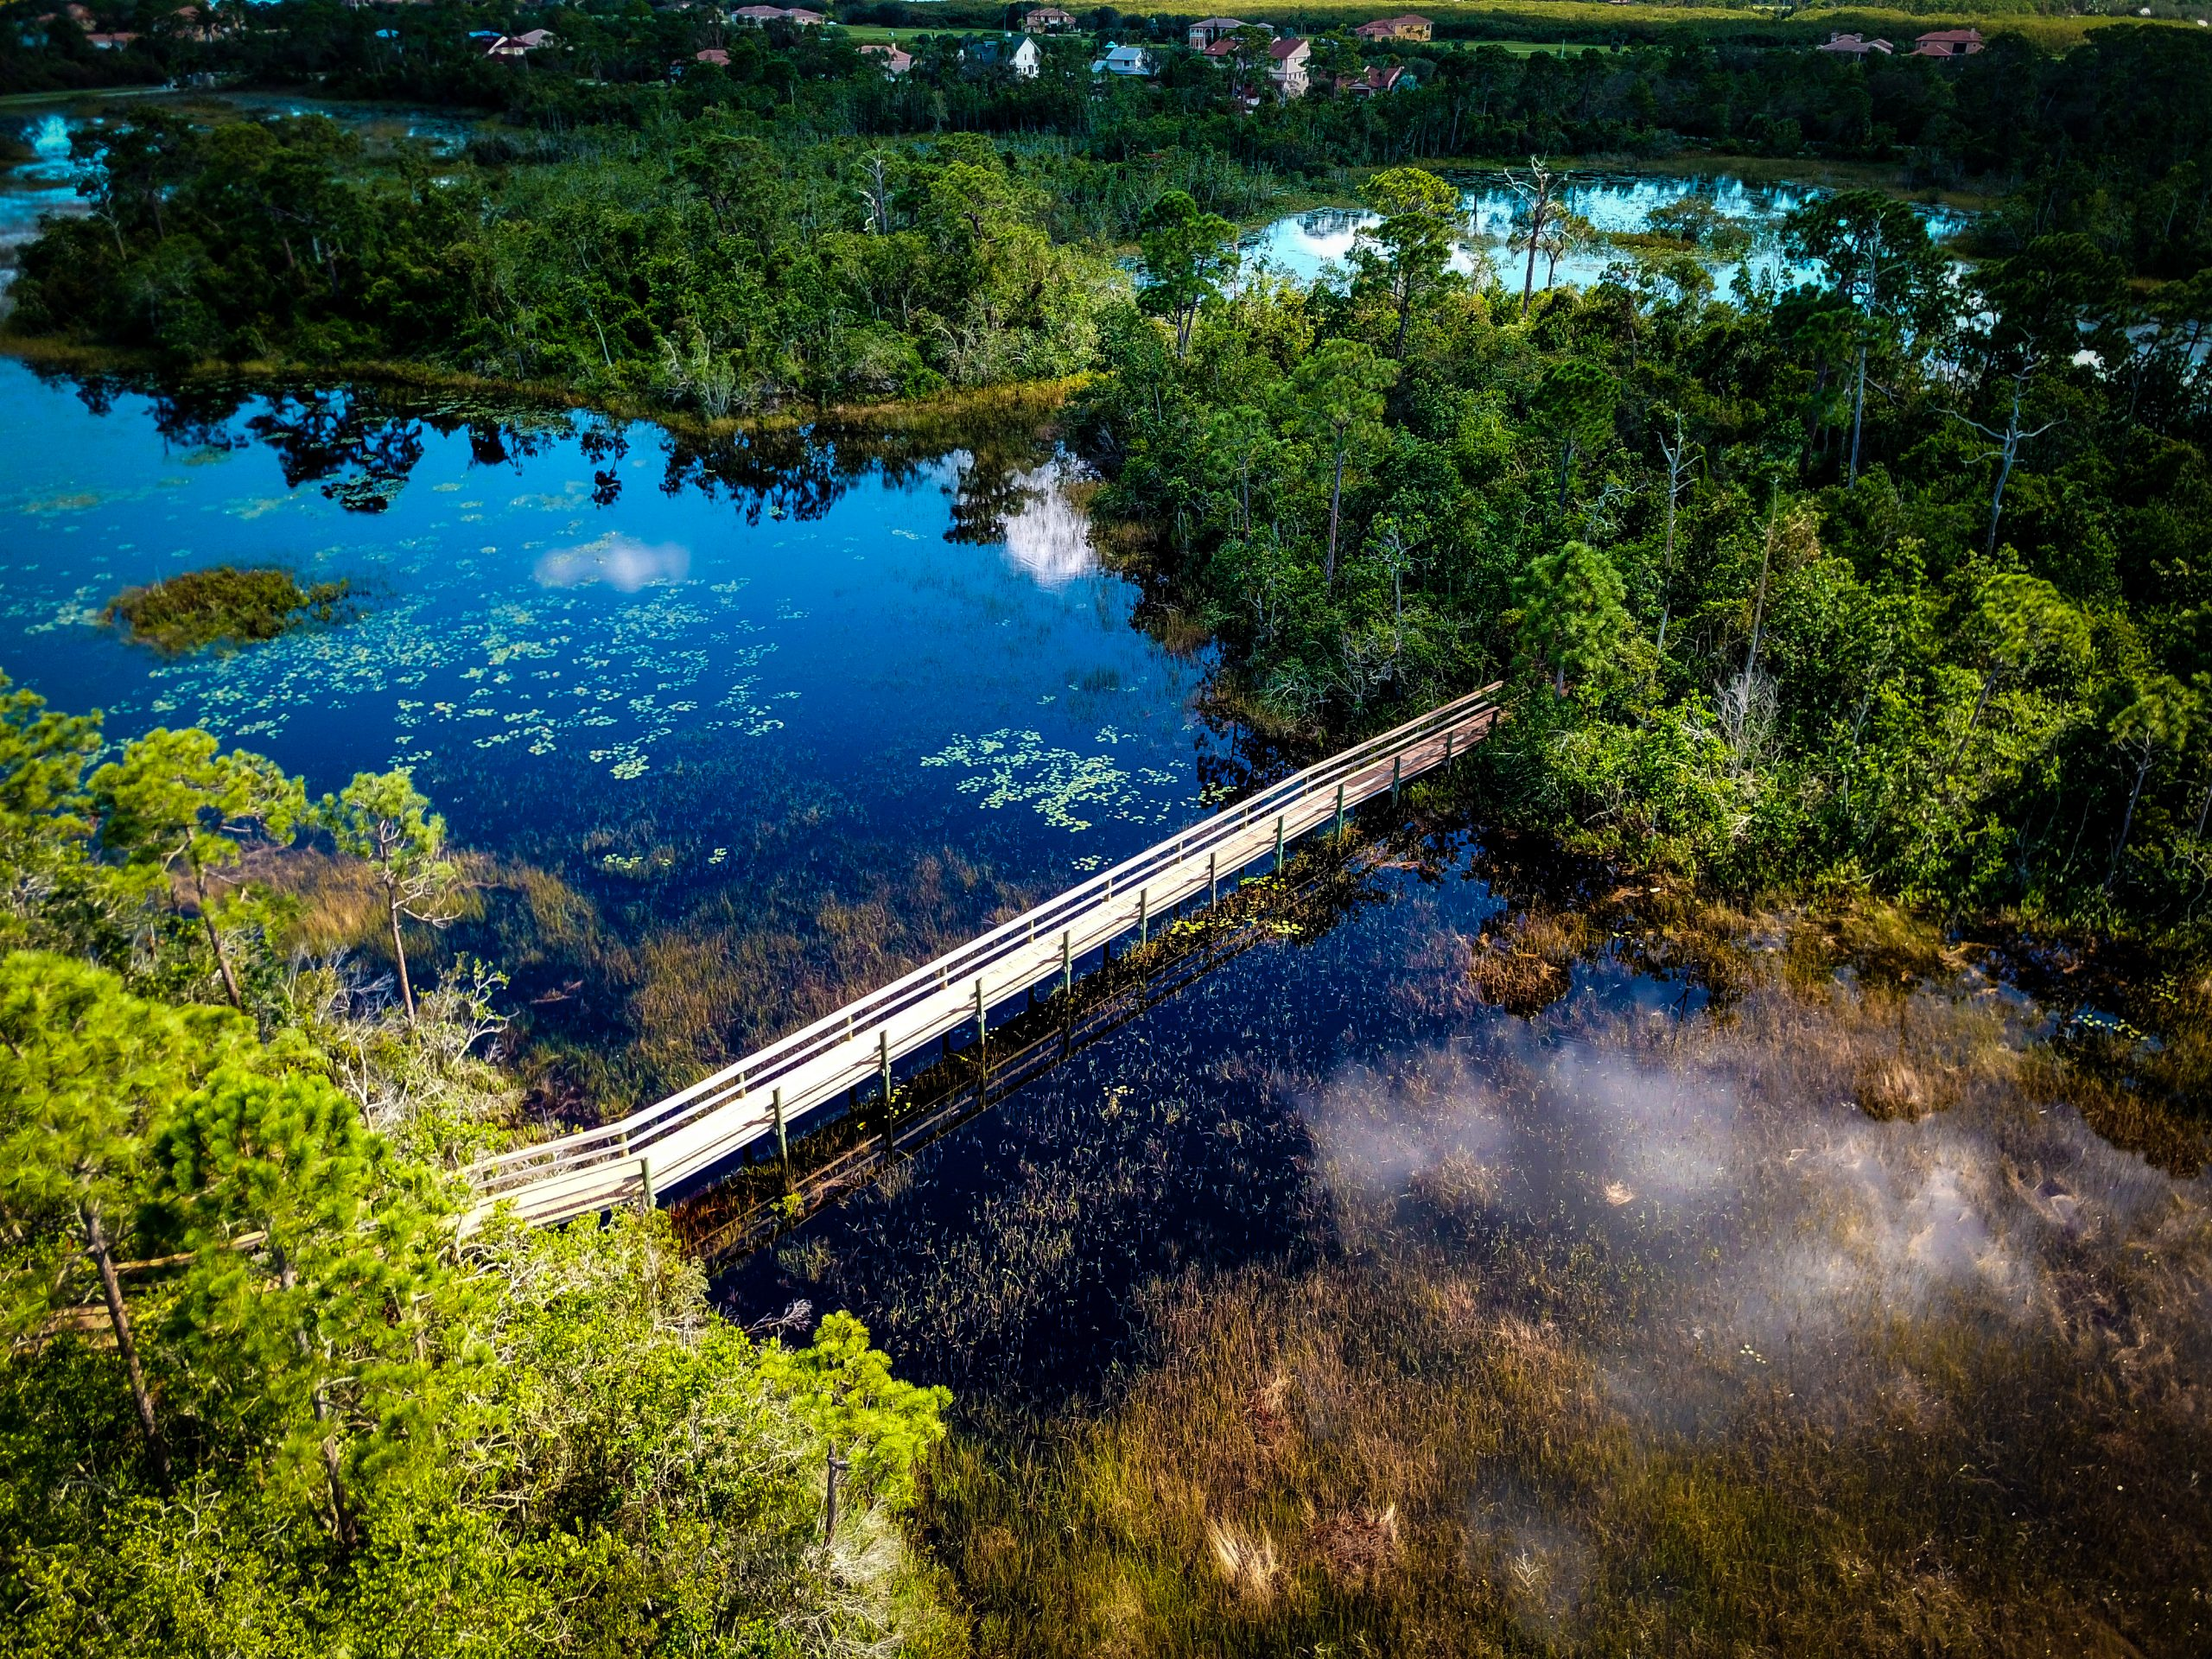 Aerial of bridge over water along a trail